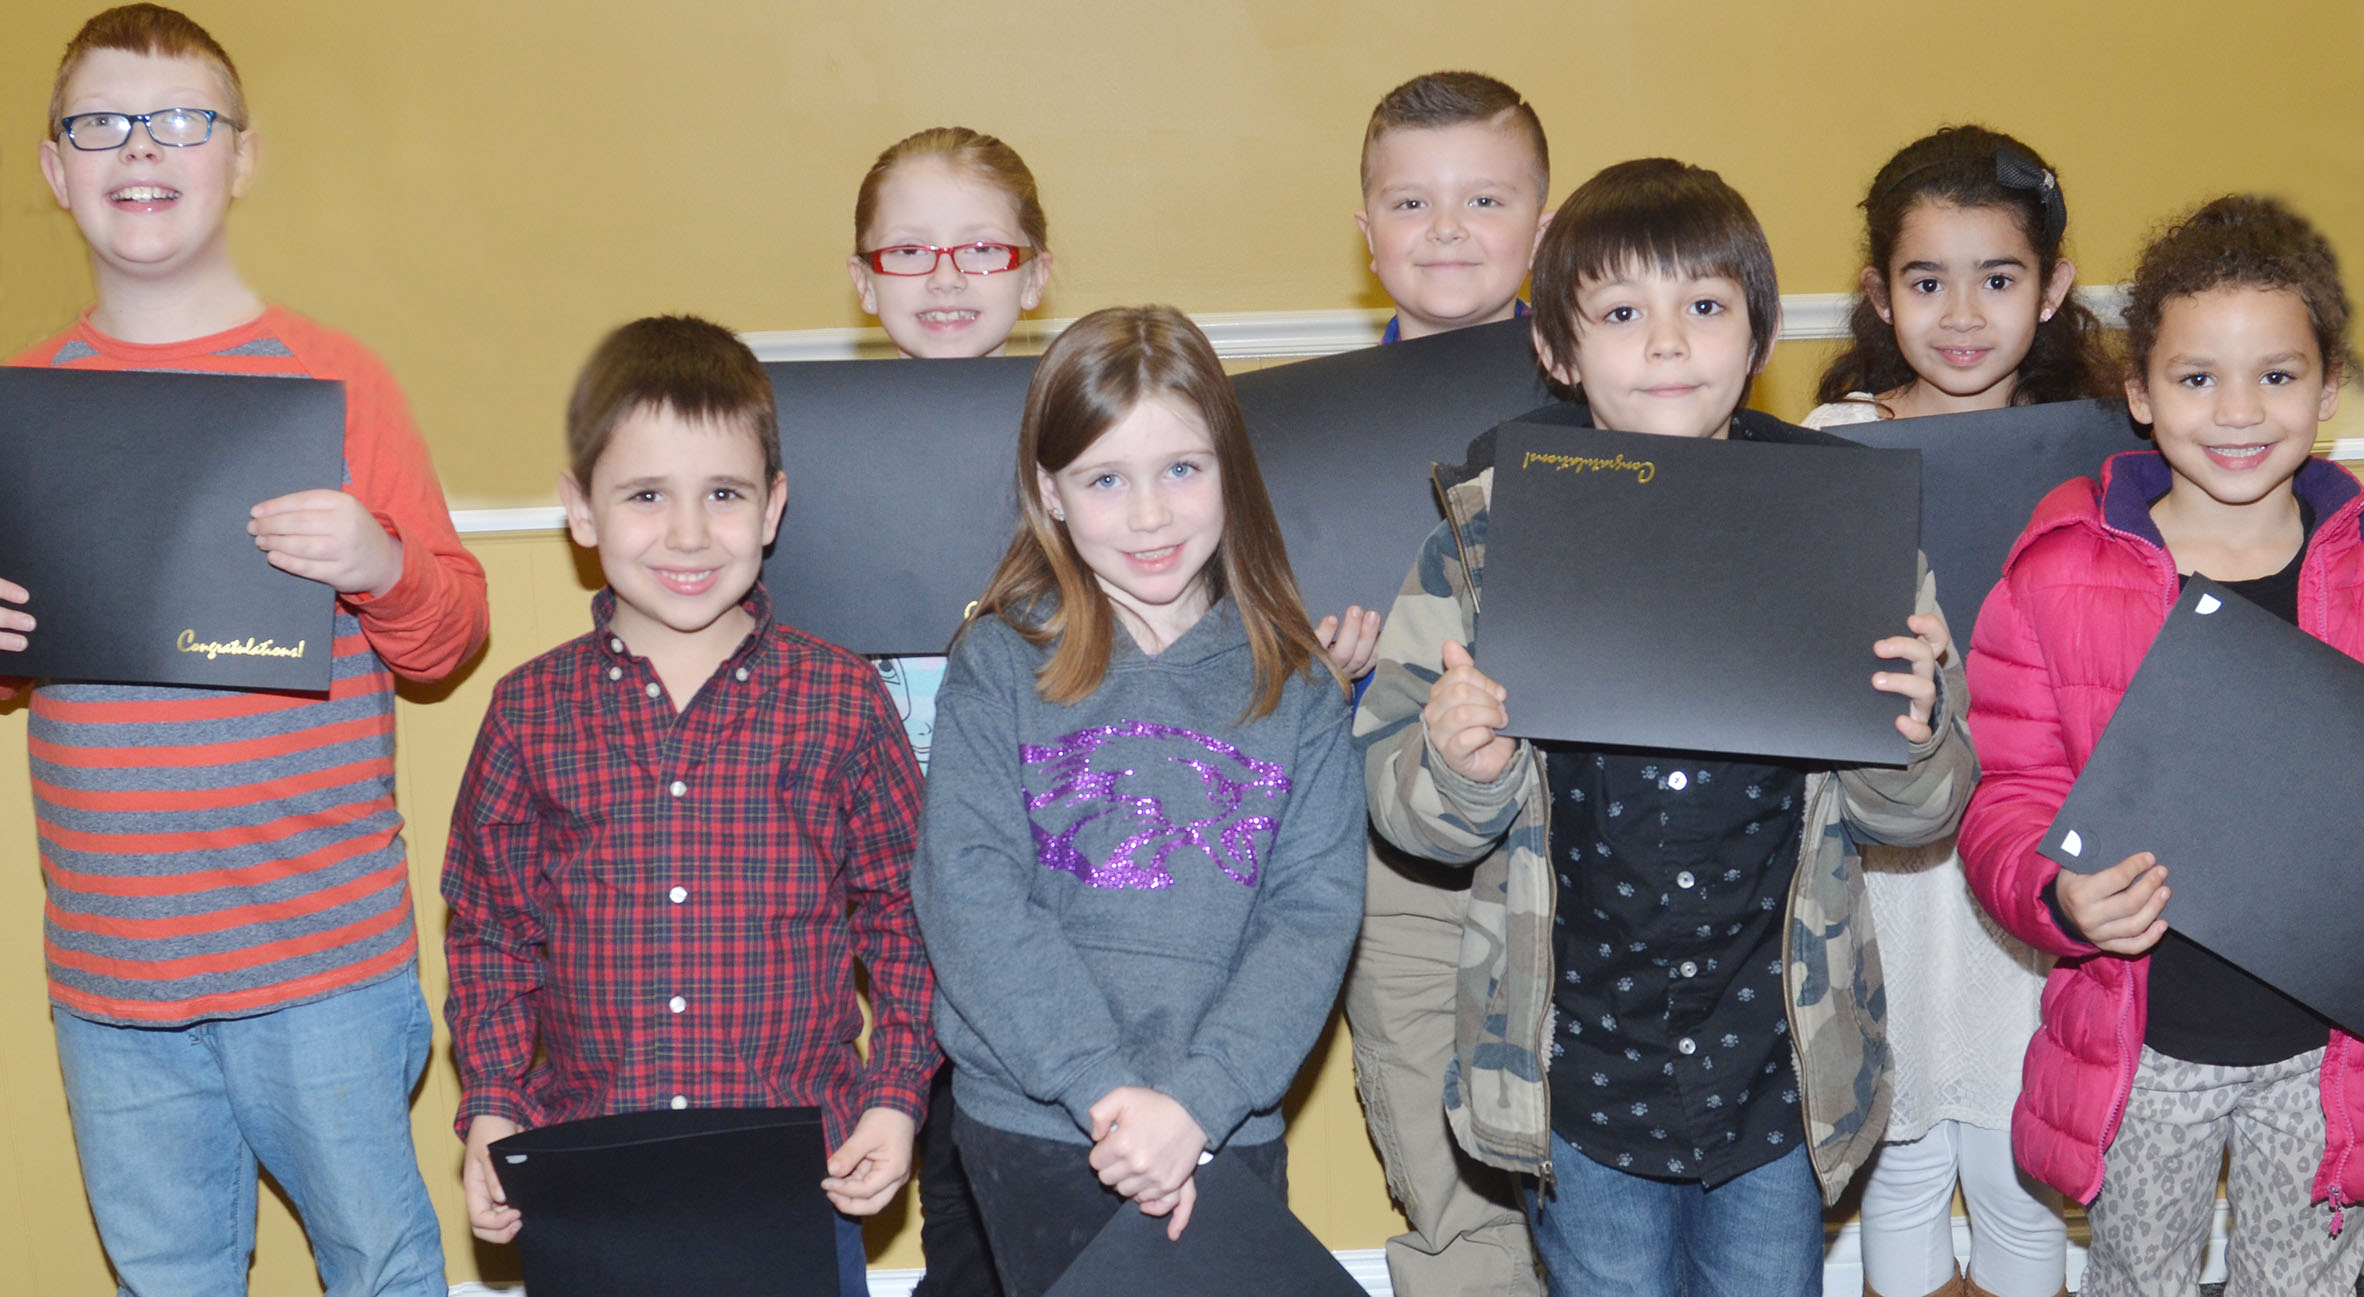 Campbellsville Elementary School students were recently named academic achievers and honored at the Campbellsville Board of Education regular meeting on Monday, Feb. 13. Students honored include, from left, front, first-graders Aaron Floyd and Izzy Brunelle and kindergarteners Keagan Shearer and Aleeya Spaulding. Back, third-graders Aidan Phillips and Gracie Pendleton and second-graders Cayton Lawhorn and Sophie Santos.